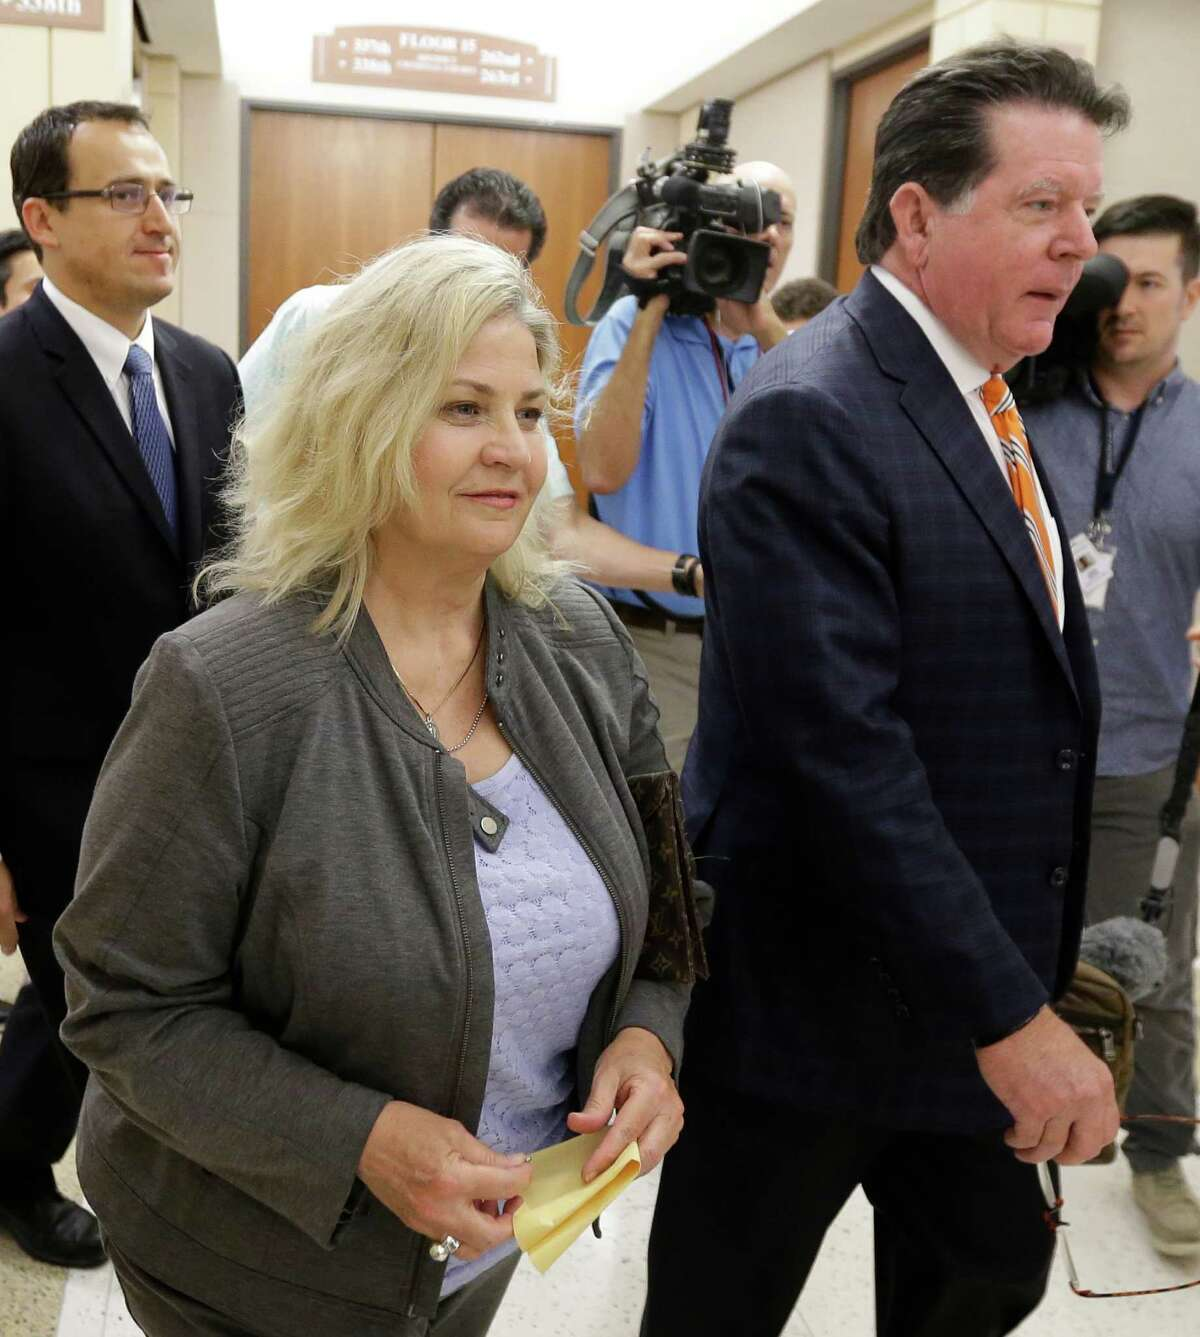 Sandra Merritt leaves court with her attorney, Dan Cogdell, after rejecting the county's plea offer.